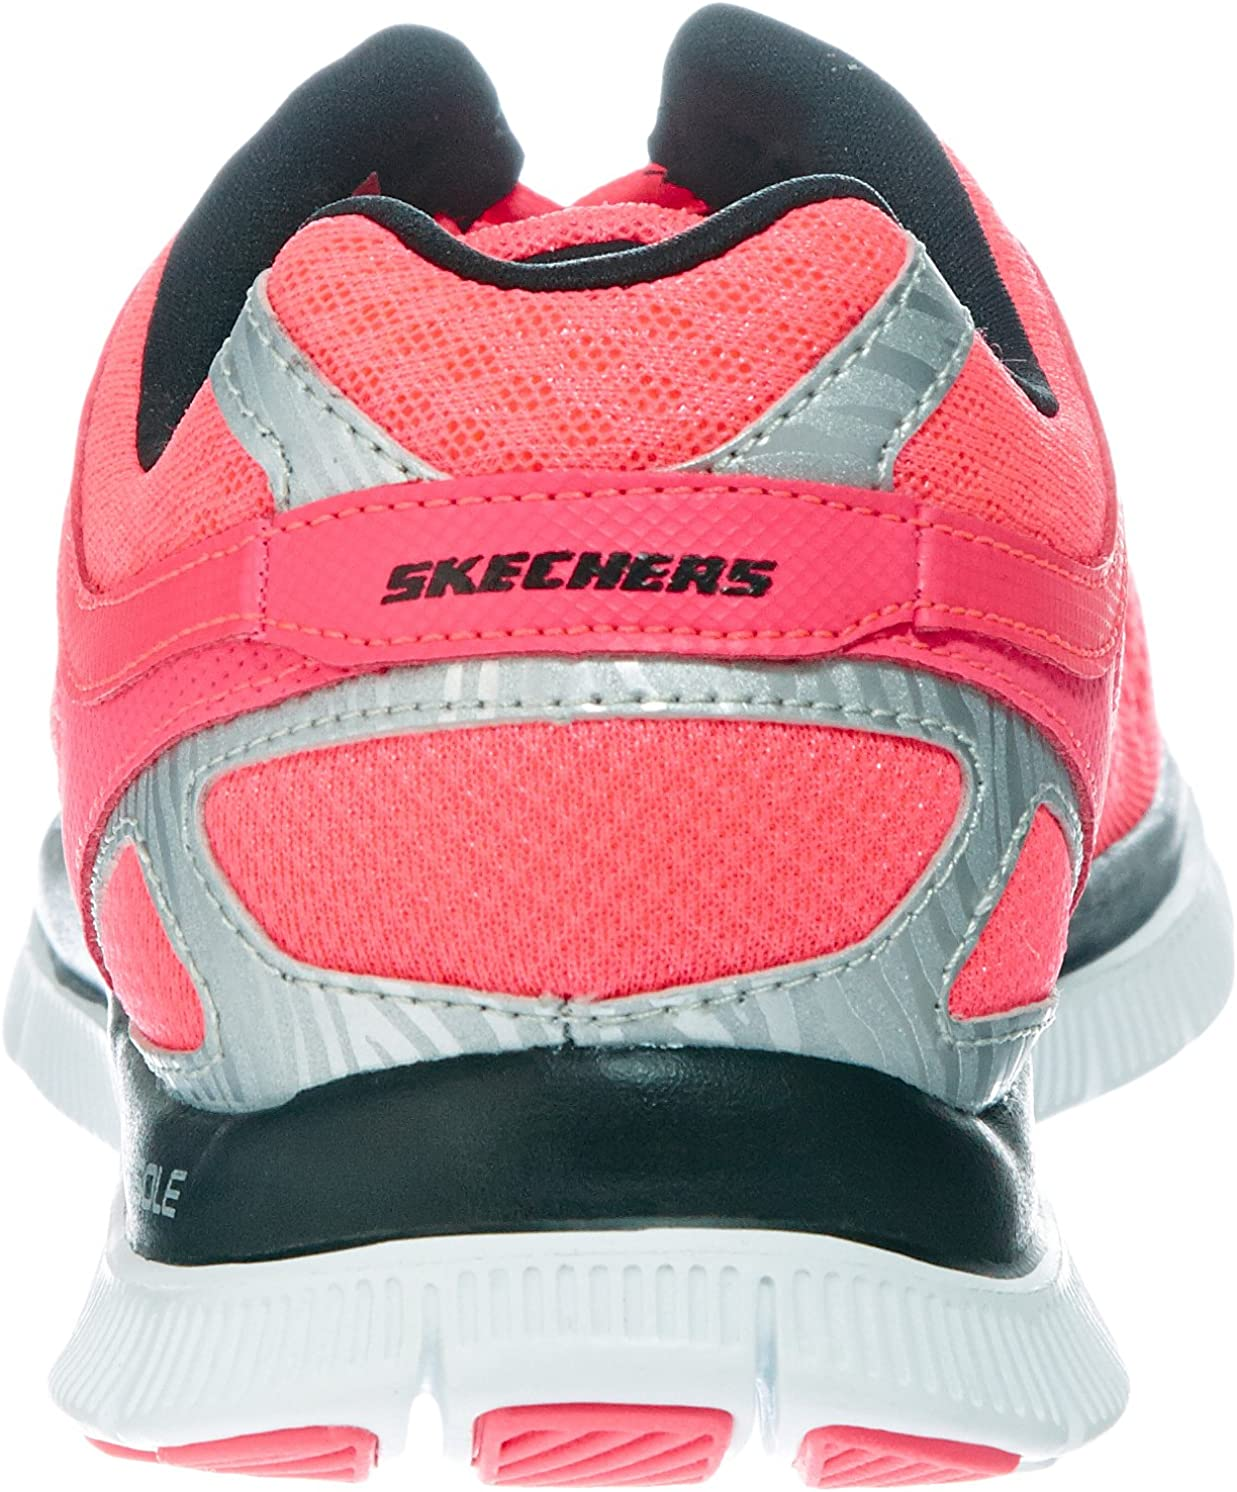 UK SIZE 3 4 5 6 7 8 15069 BKHP GO RUN 600 RUNNING SKECHERS WOMENS TRAINERS